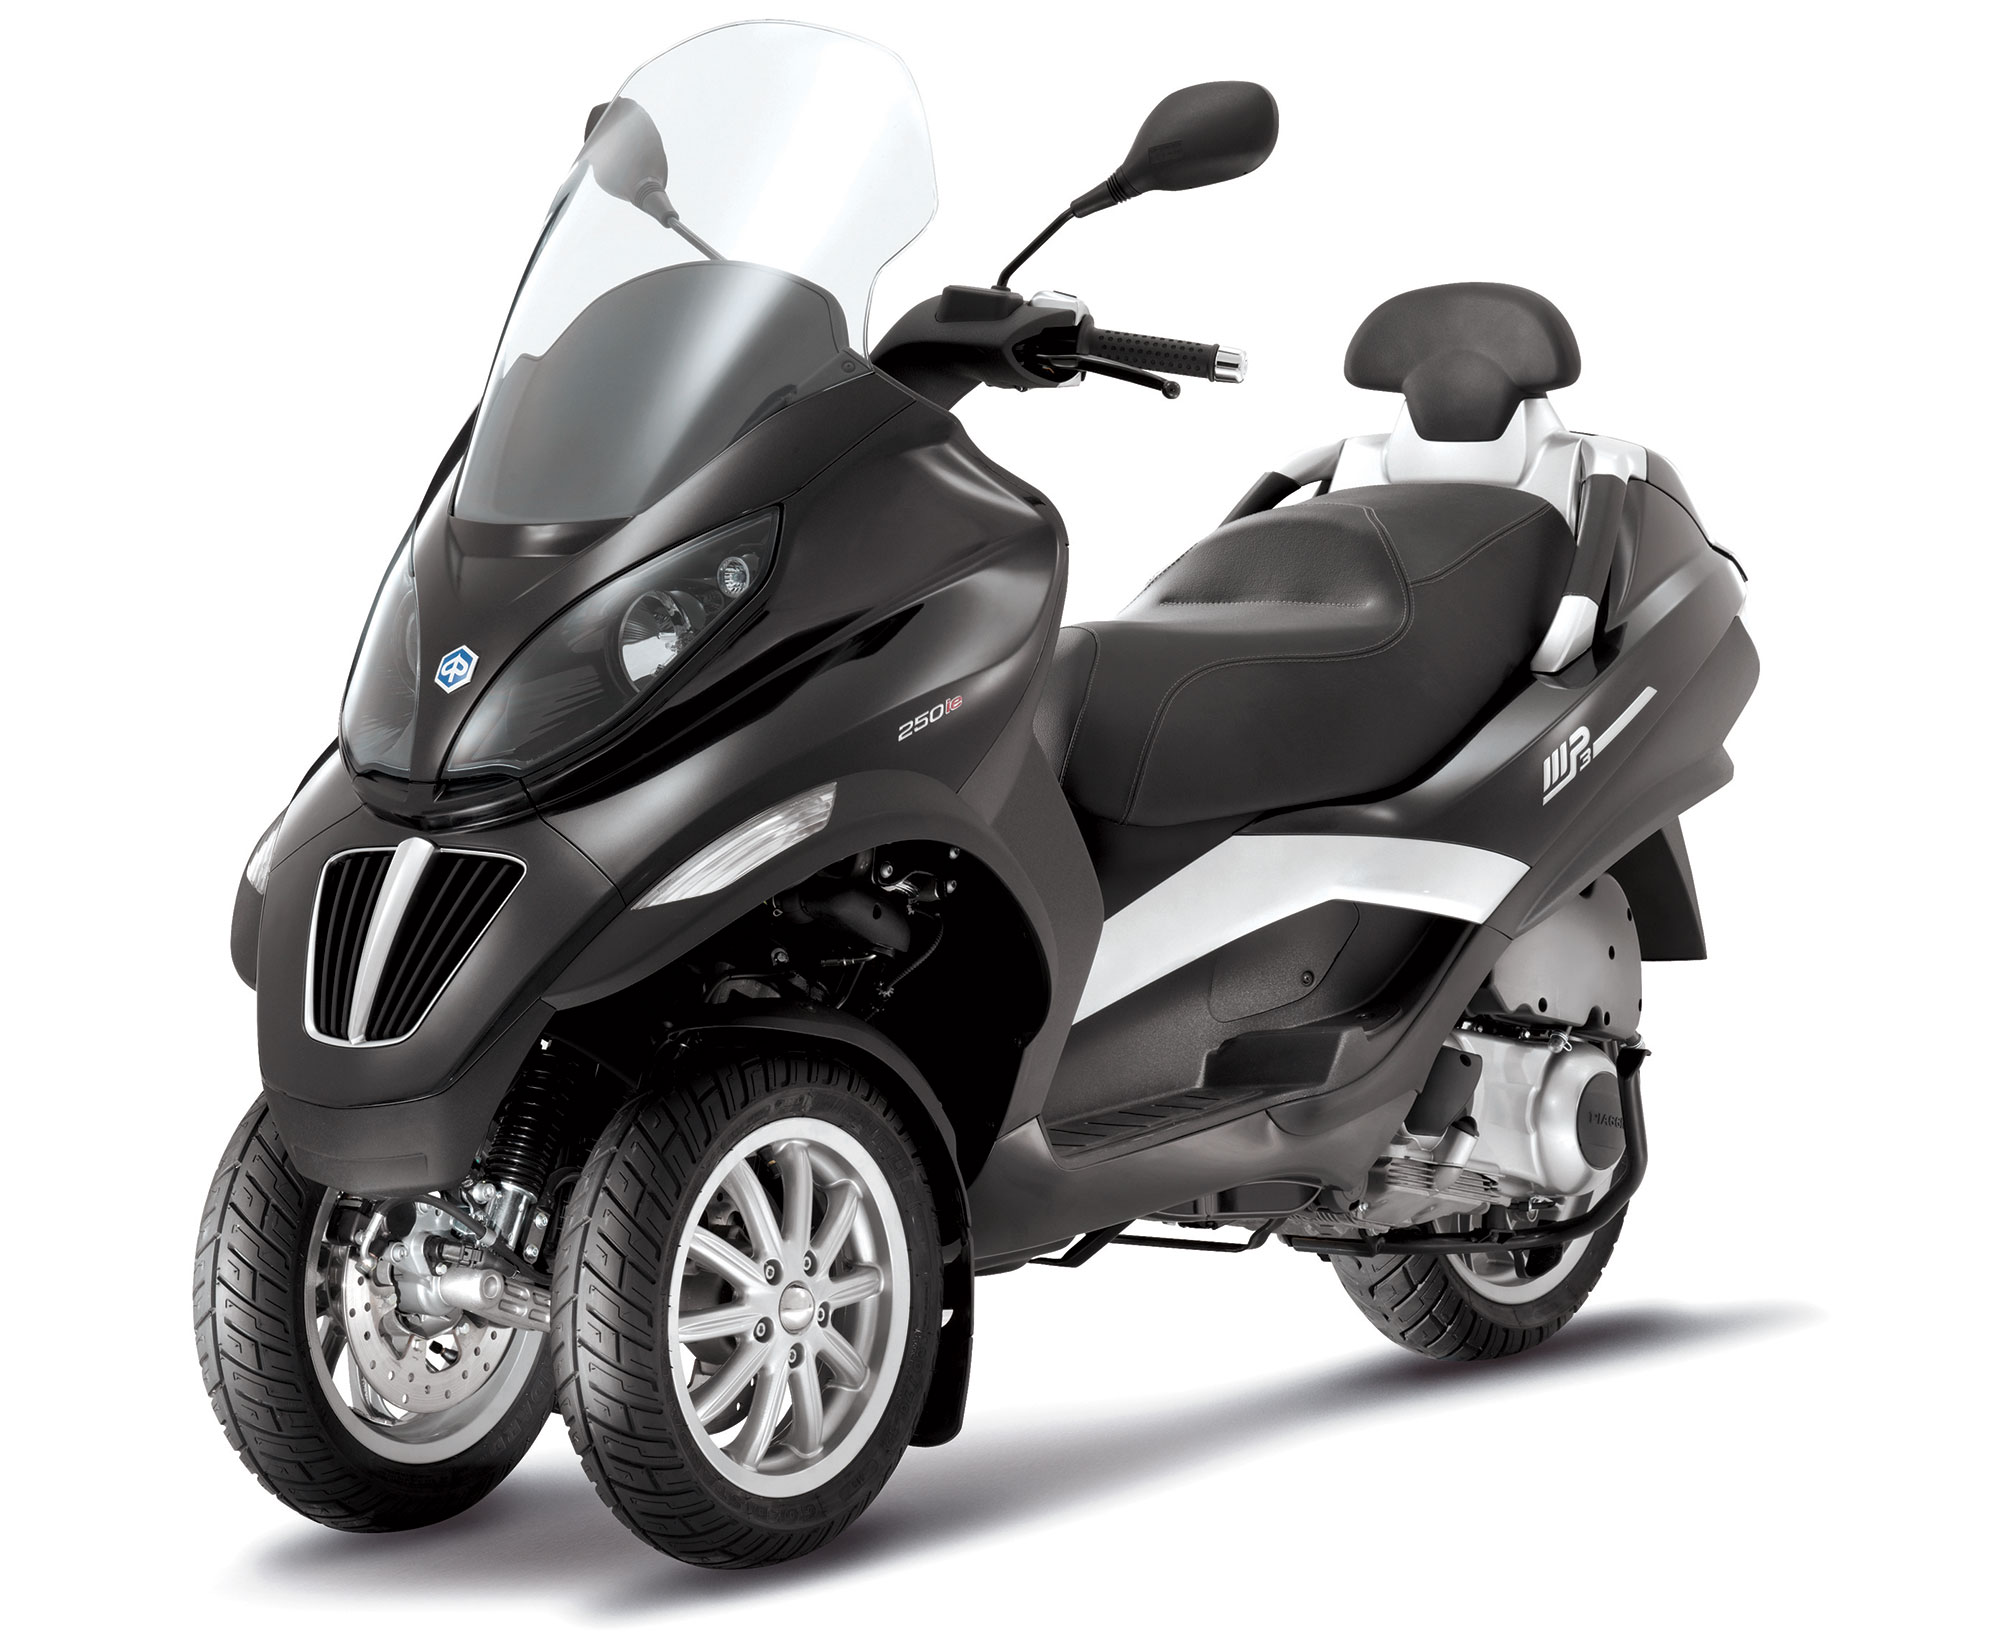 2013 piaggio mp3 250 scooter review. Black Bedroom Furniture Sets. Home Design Ideas